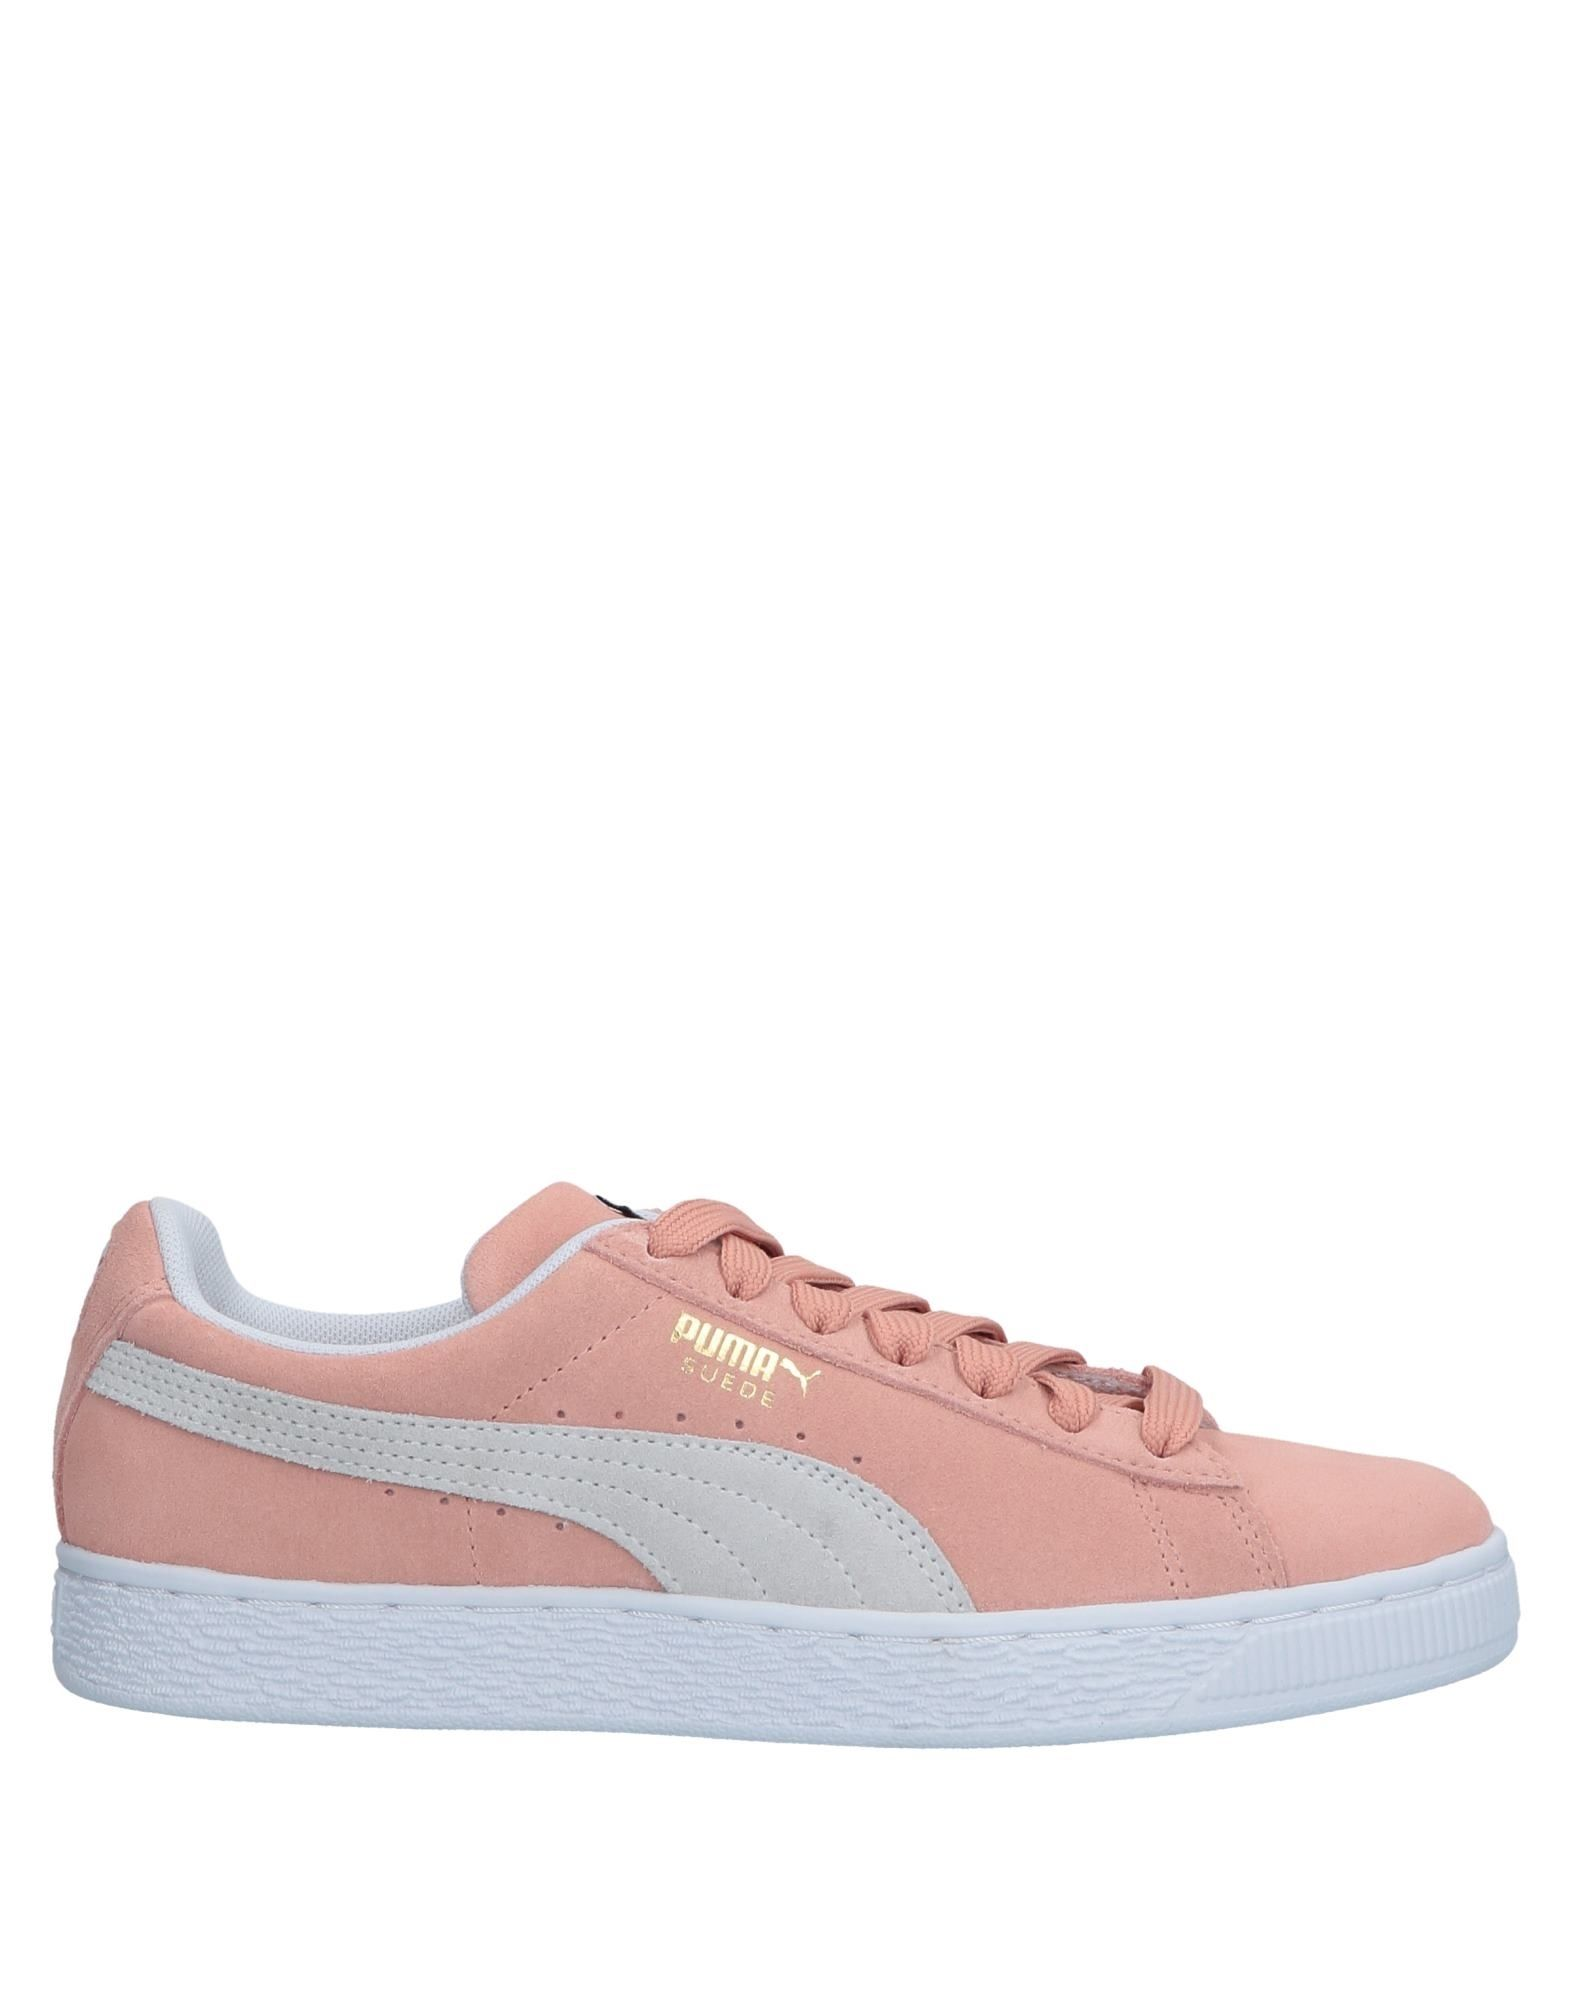 Puma Sneakers - Women Puma Sneakers - online on  Canada - Sneakers 11559371EO 5465e3